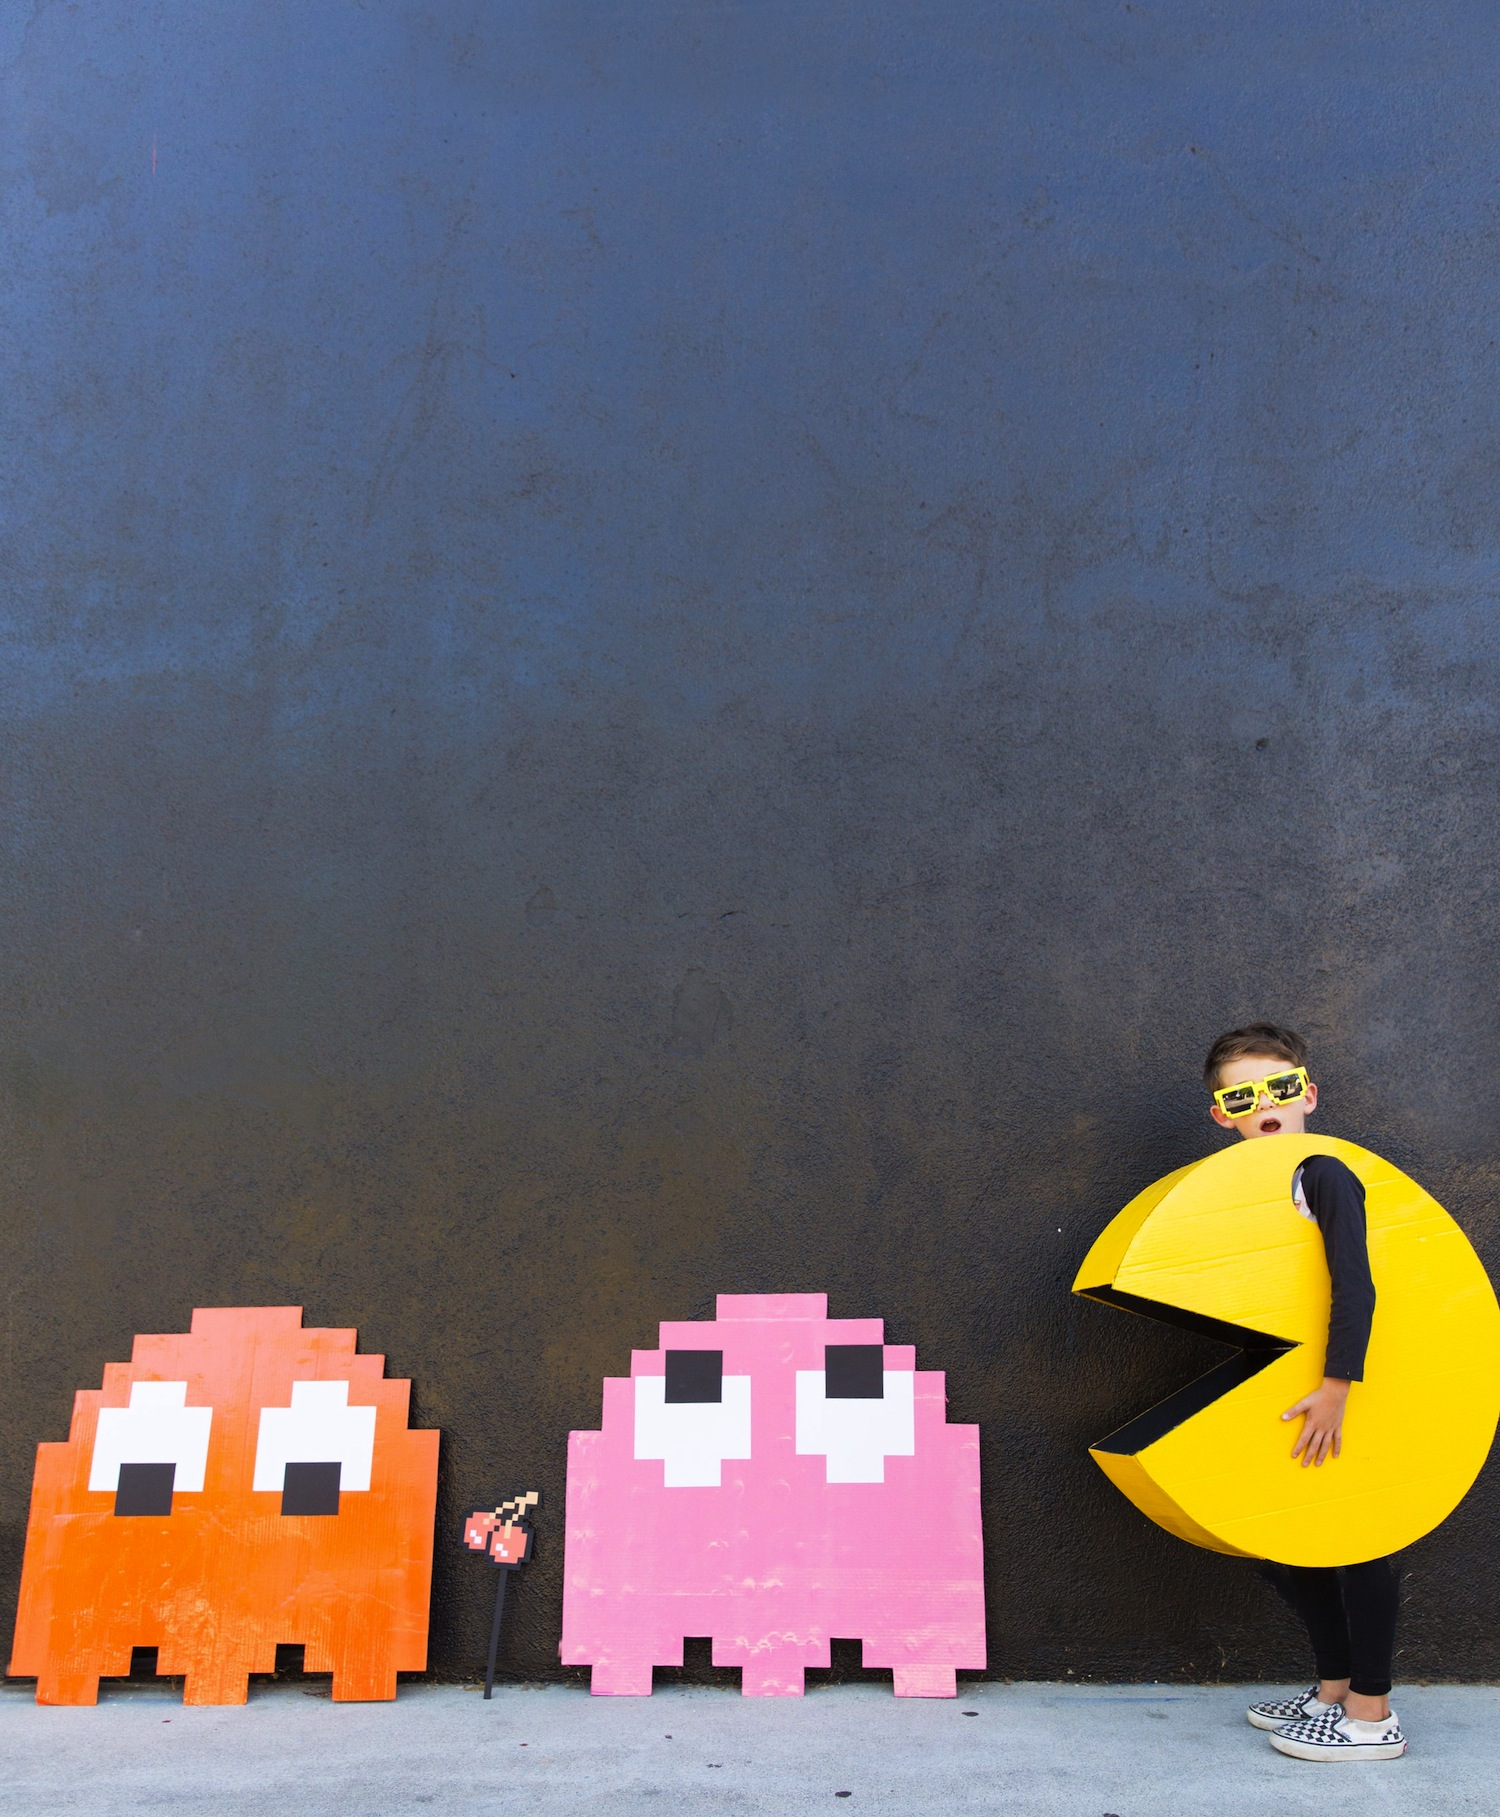 DIY // Kids PAC-MAN Halloween Costume - The Effortless Chic